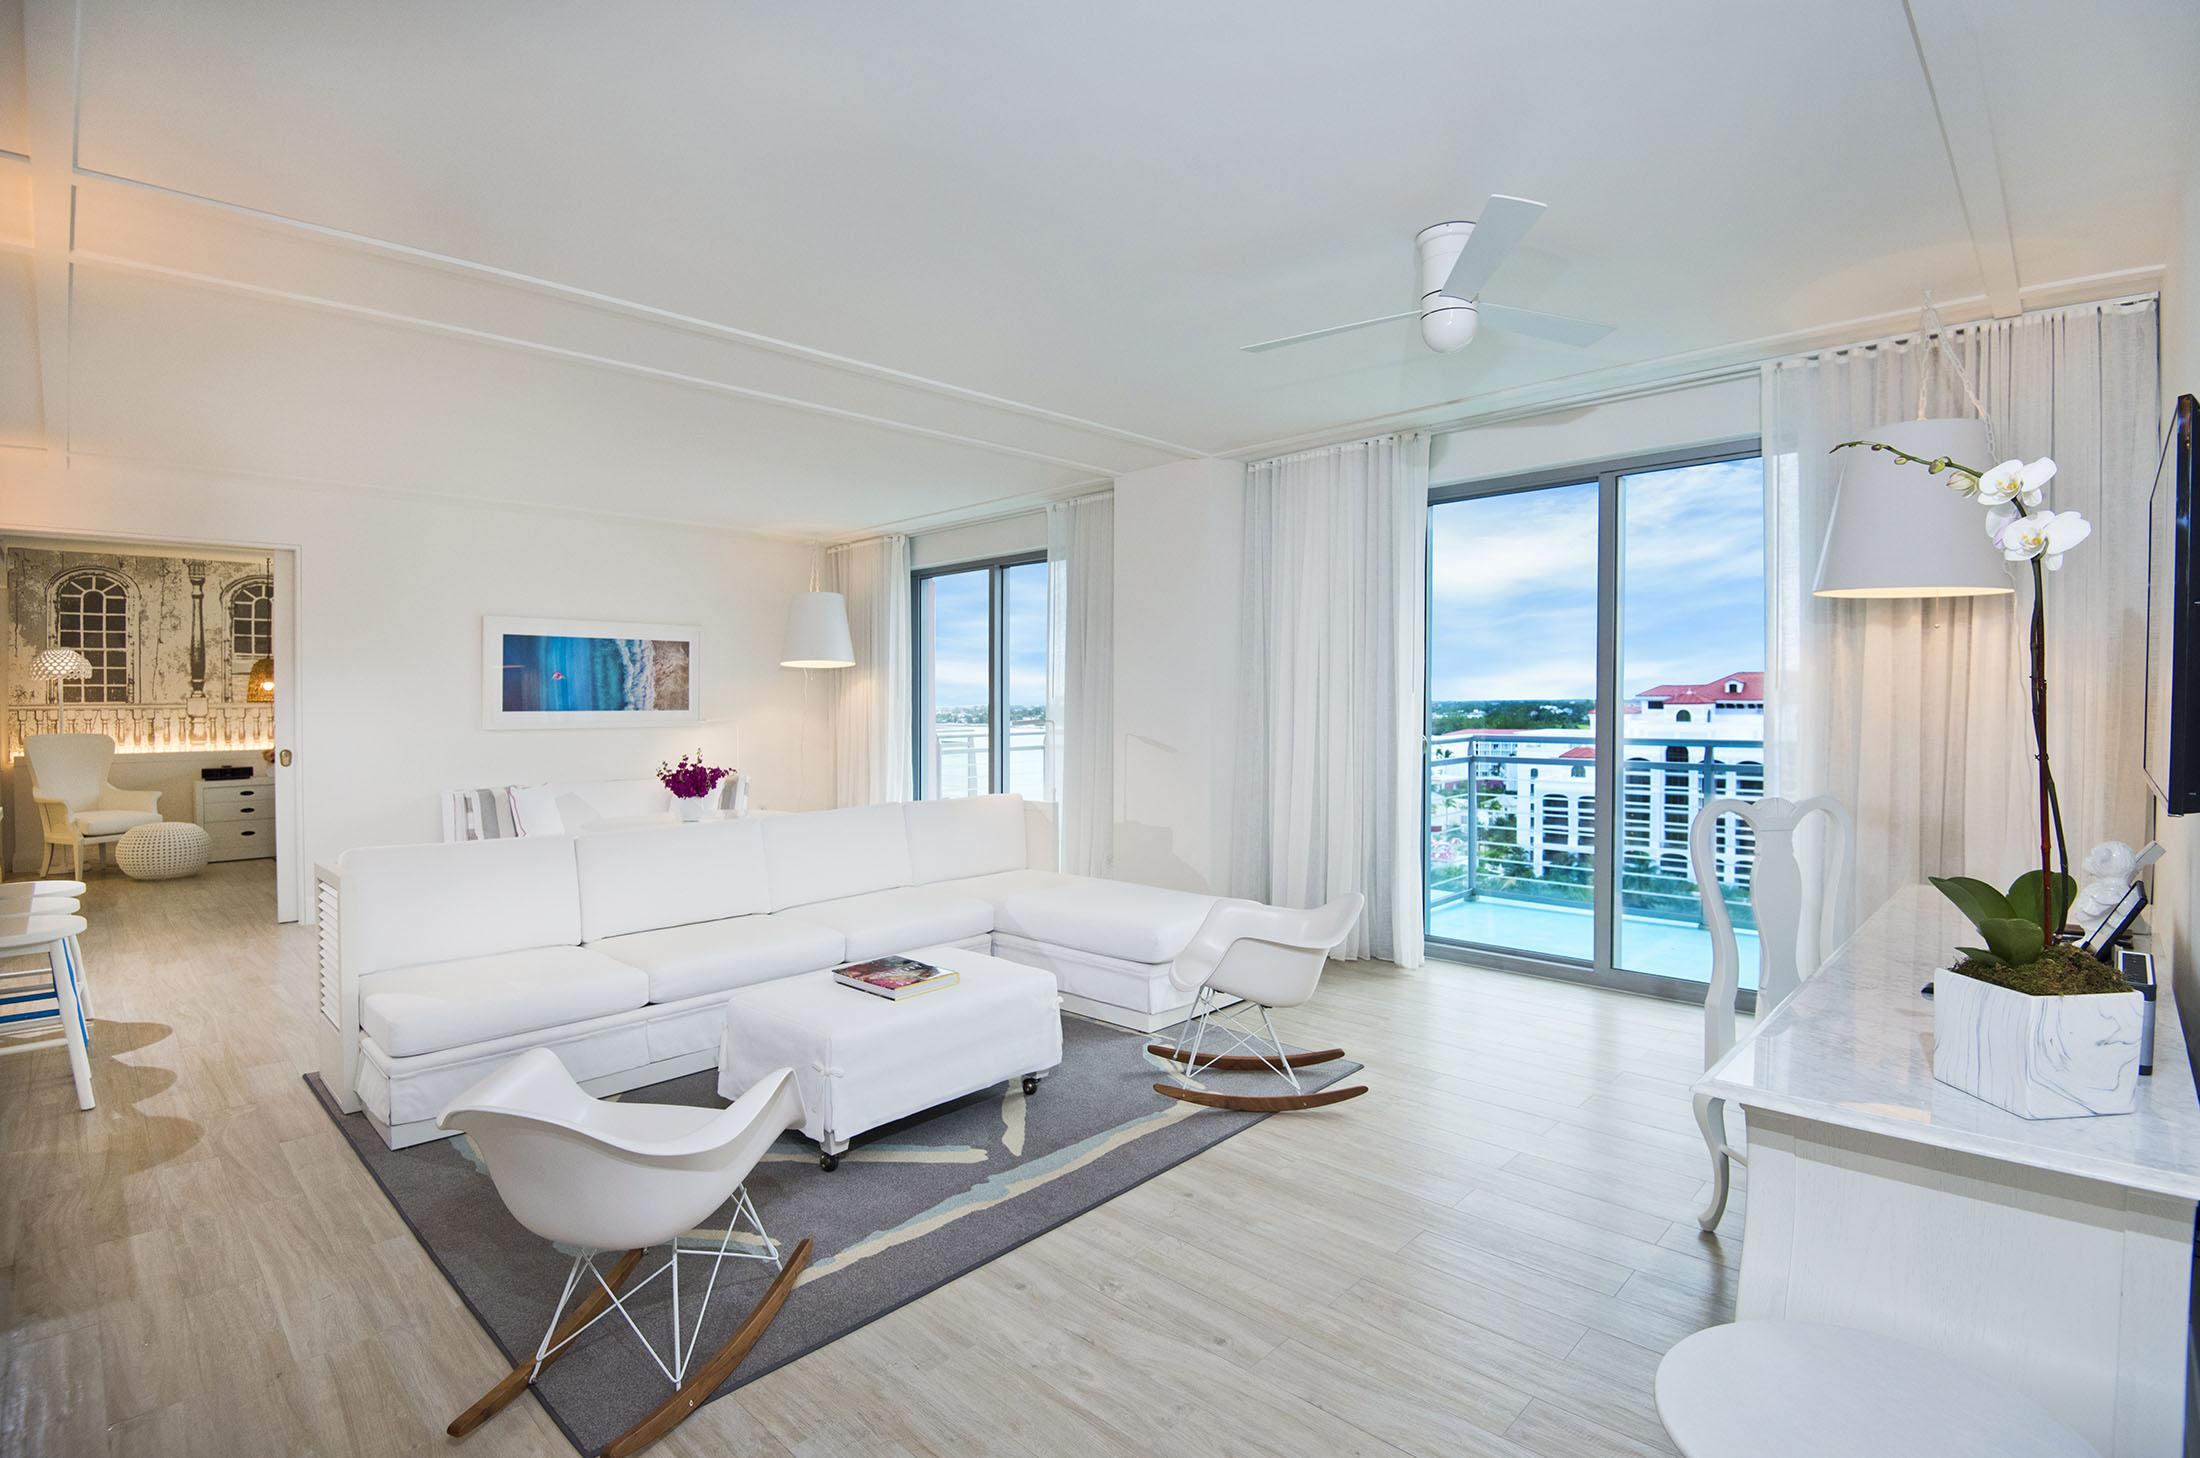 hotel room living space with white couch and chairs